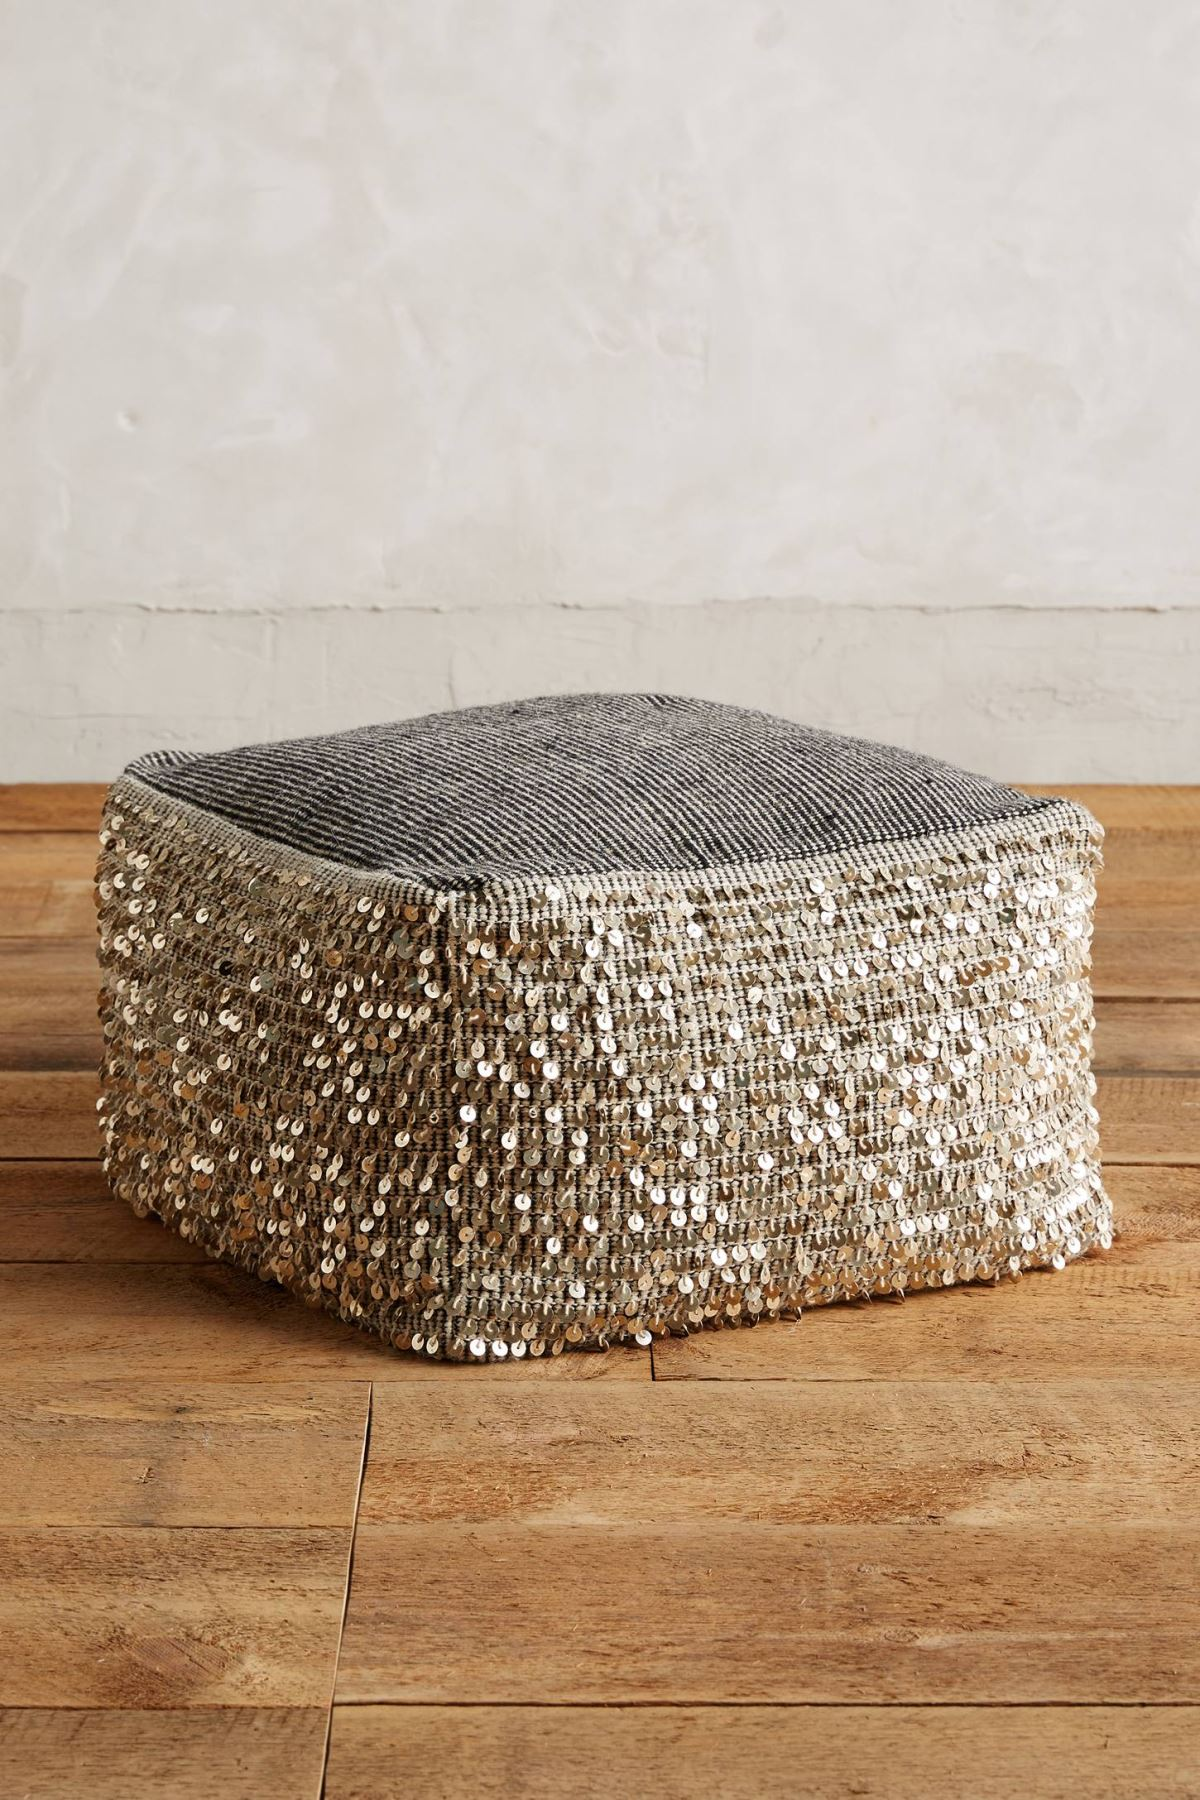 Metallic pouf from Anthropologie